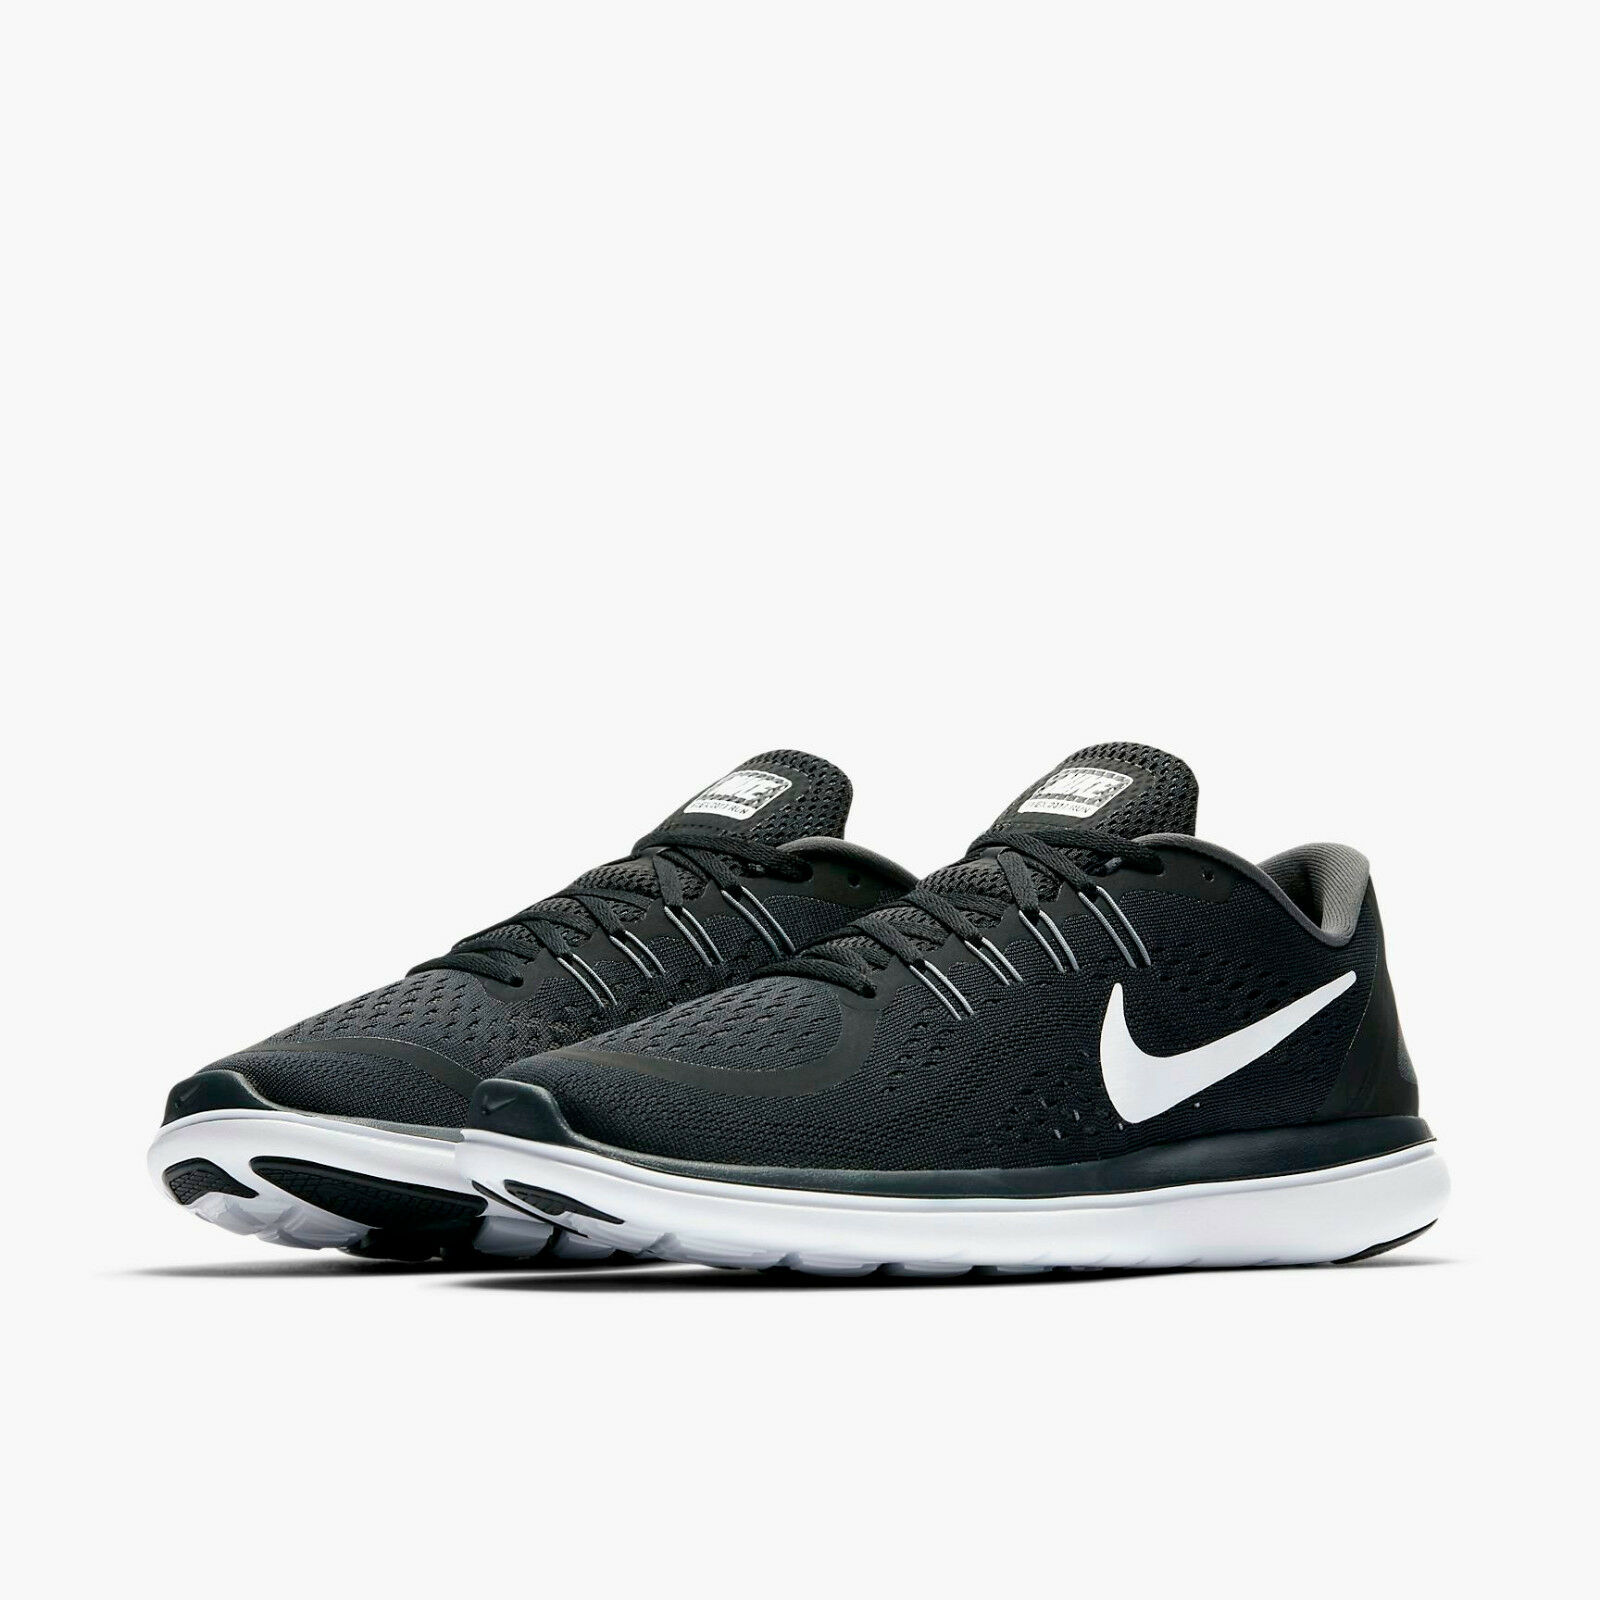 NIB NIKE Mens 10.5 FLEX 2017 RN 898457 001 BLACK CASUAL RUNNING SHOES MSRP Price reduction The latest discount shoes for men and women